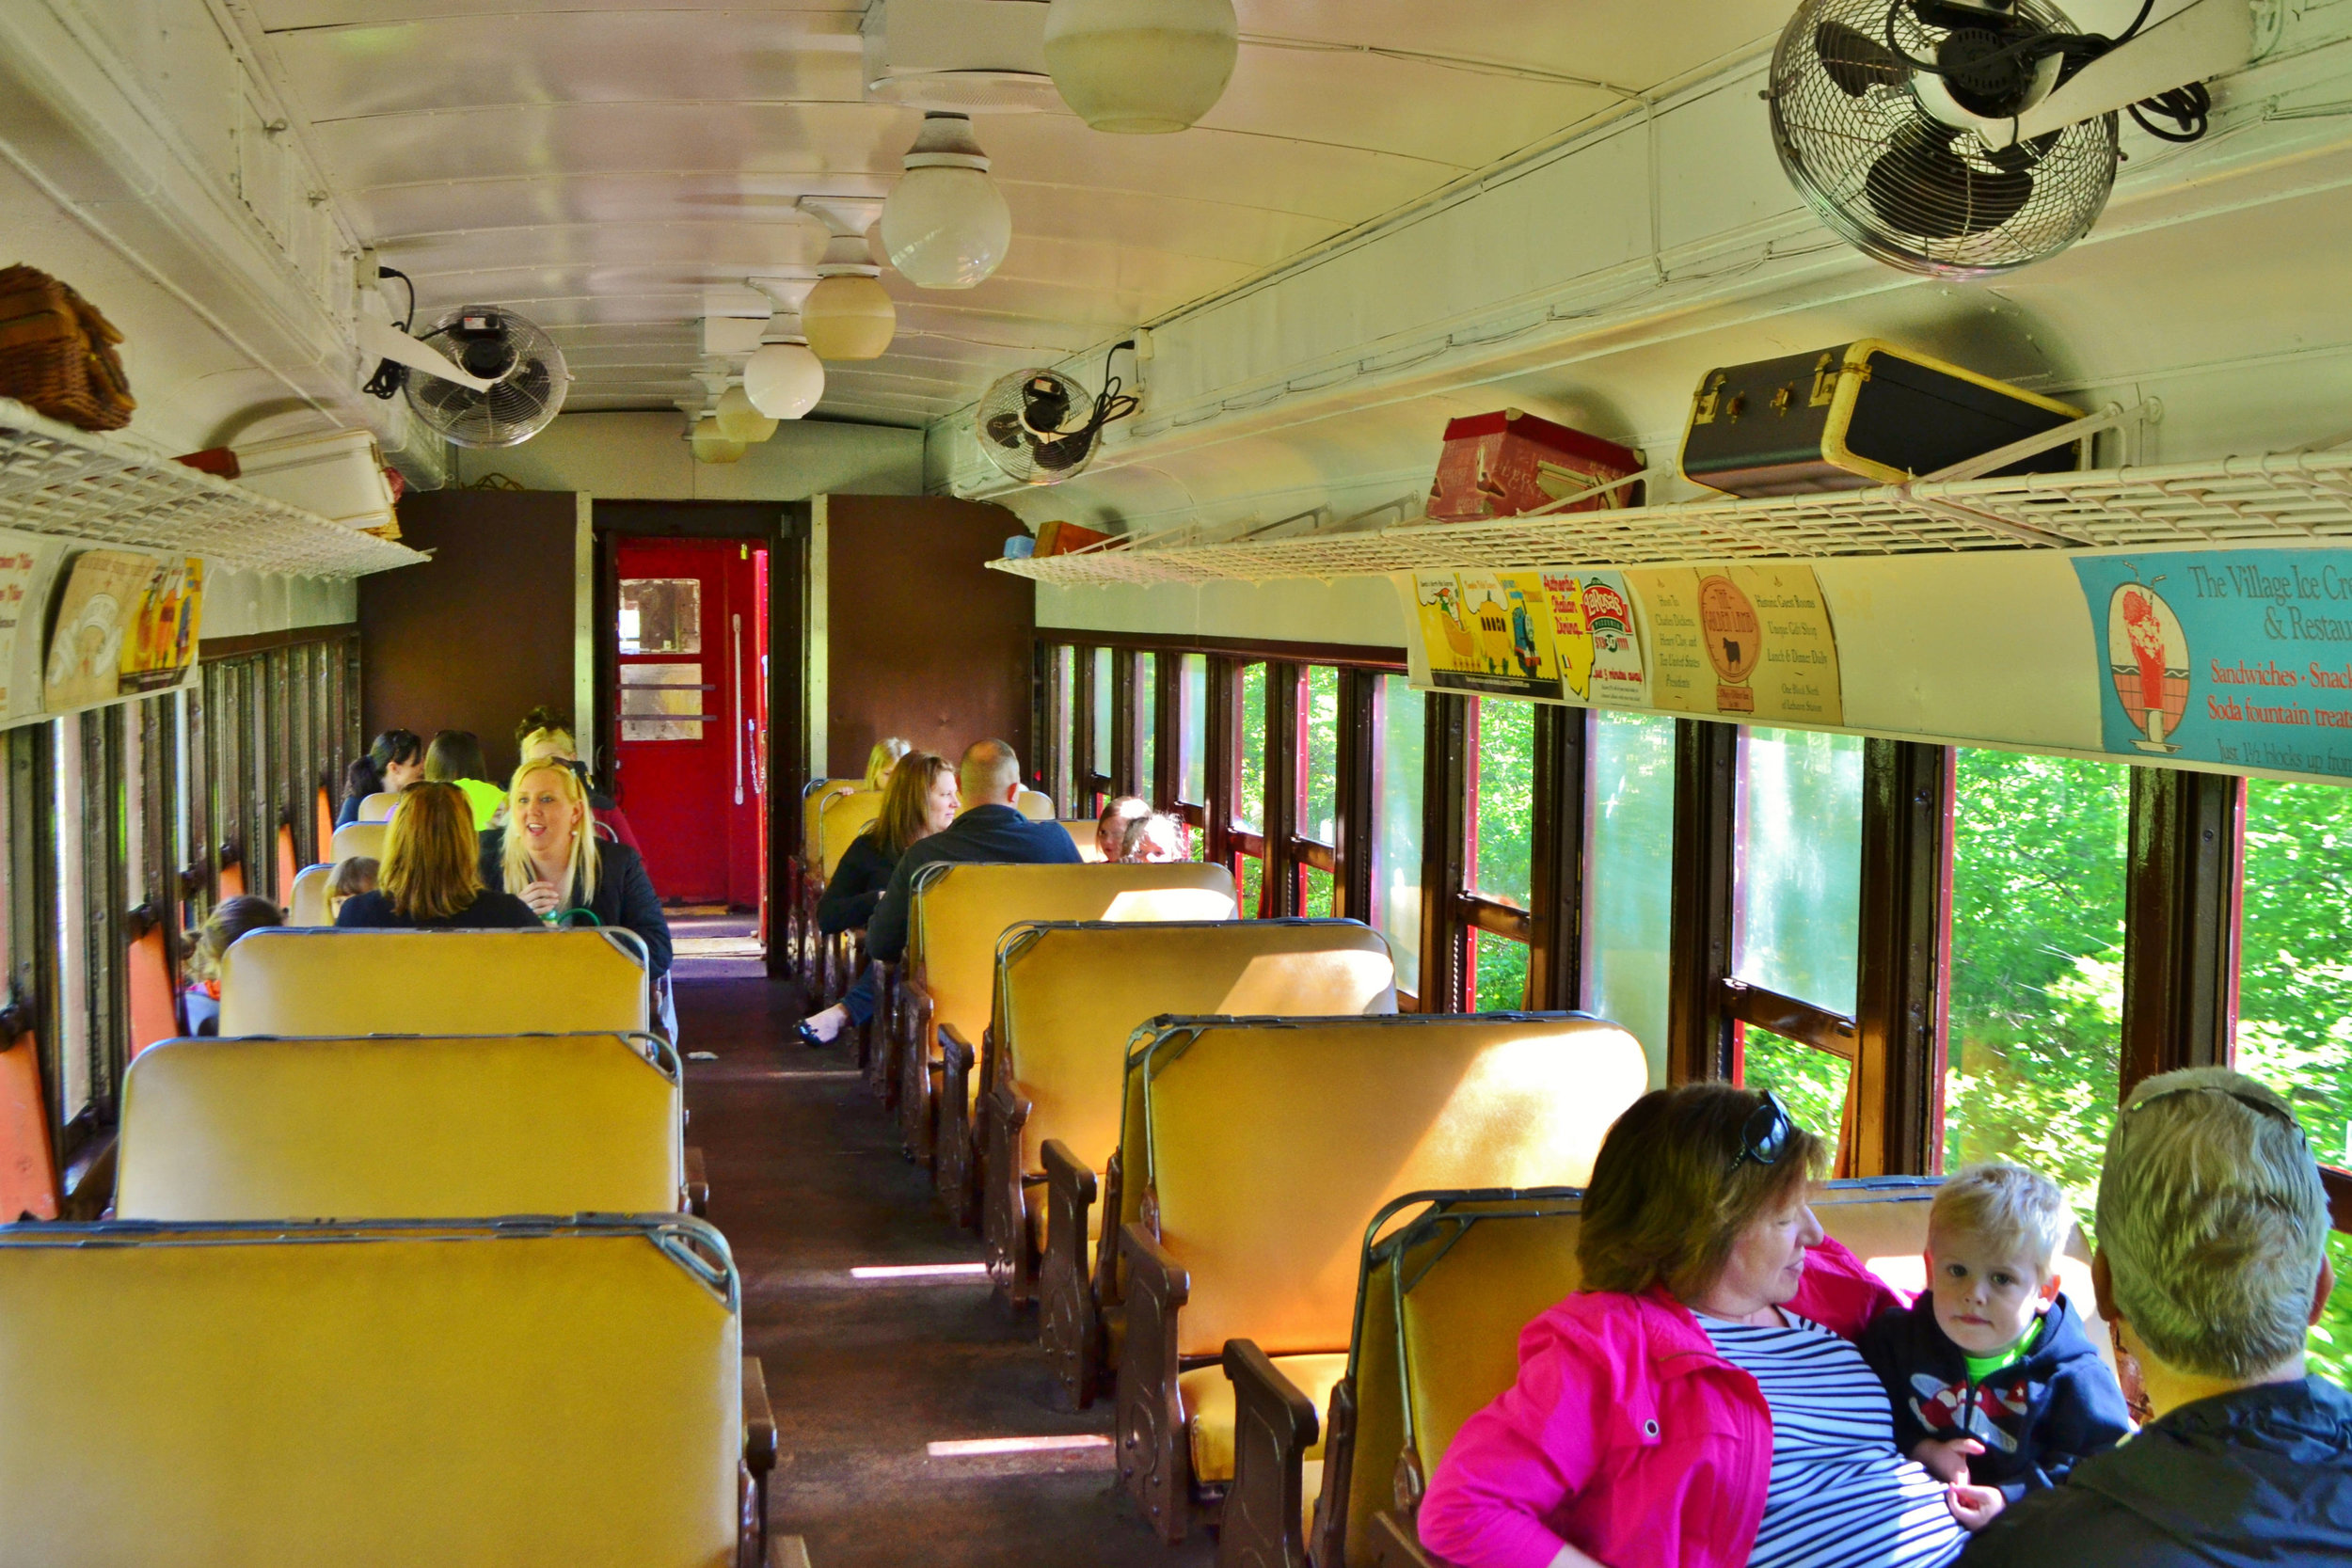 Lackawanna coach interior. This car was built in 1930 and features open windows.